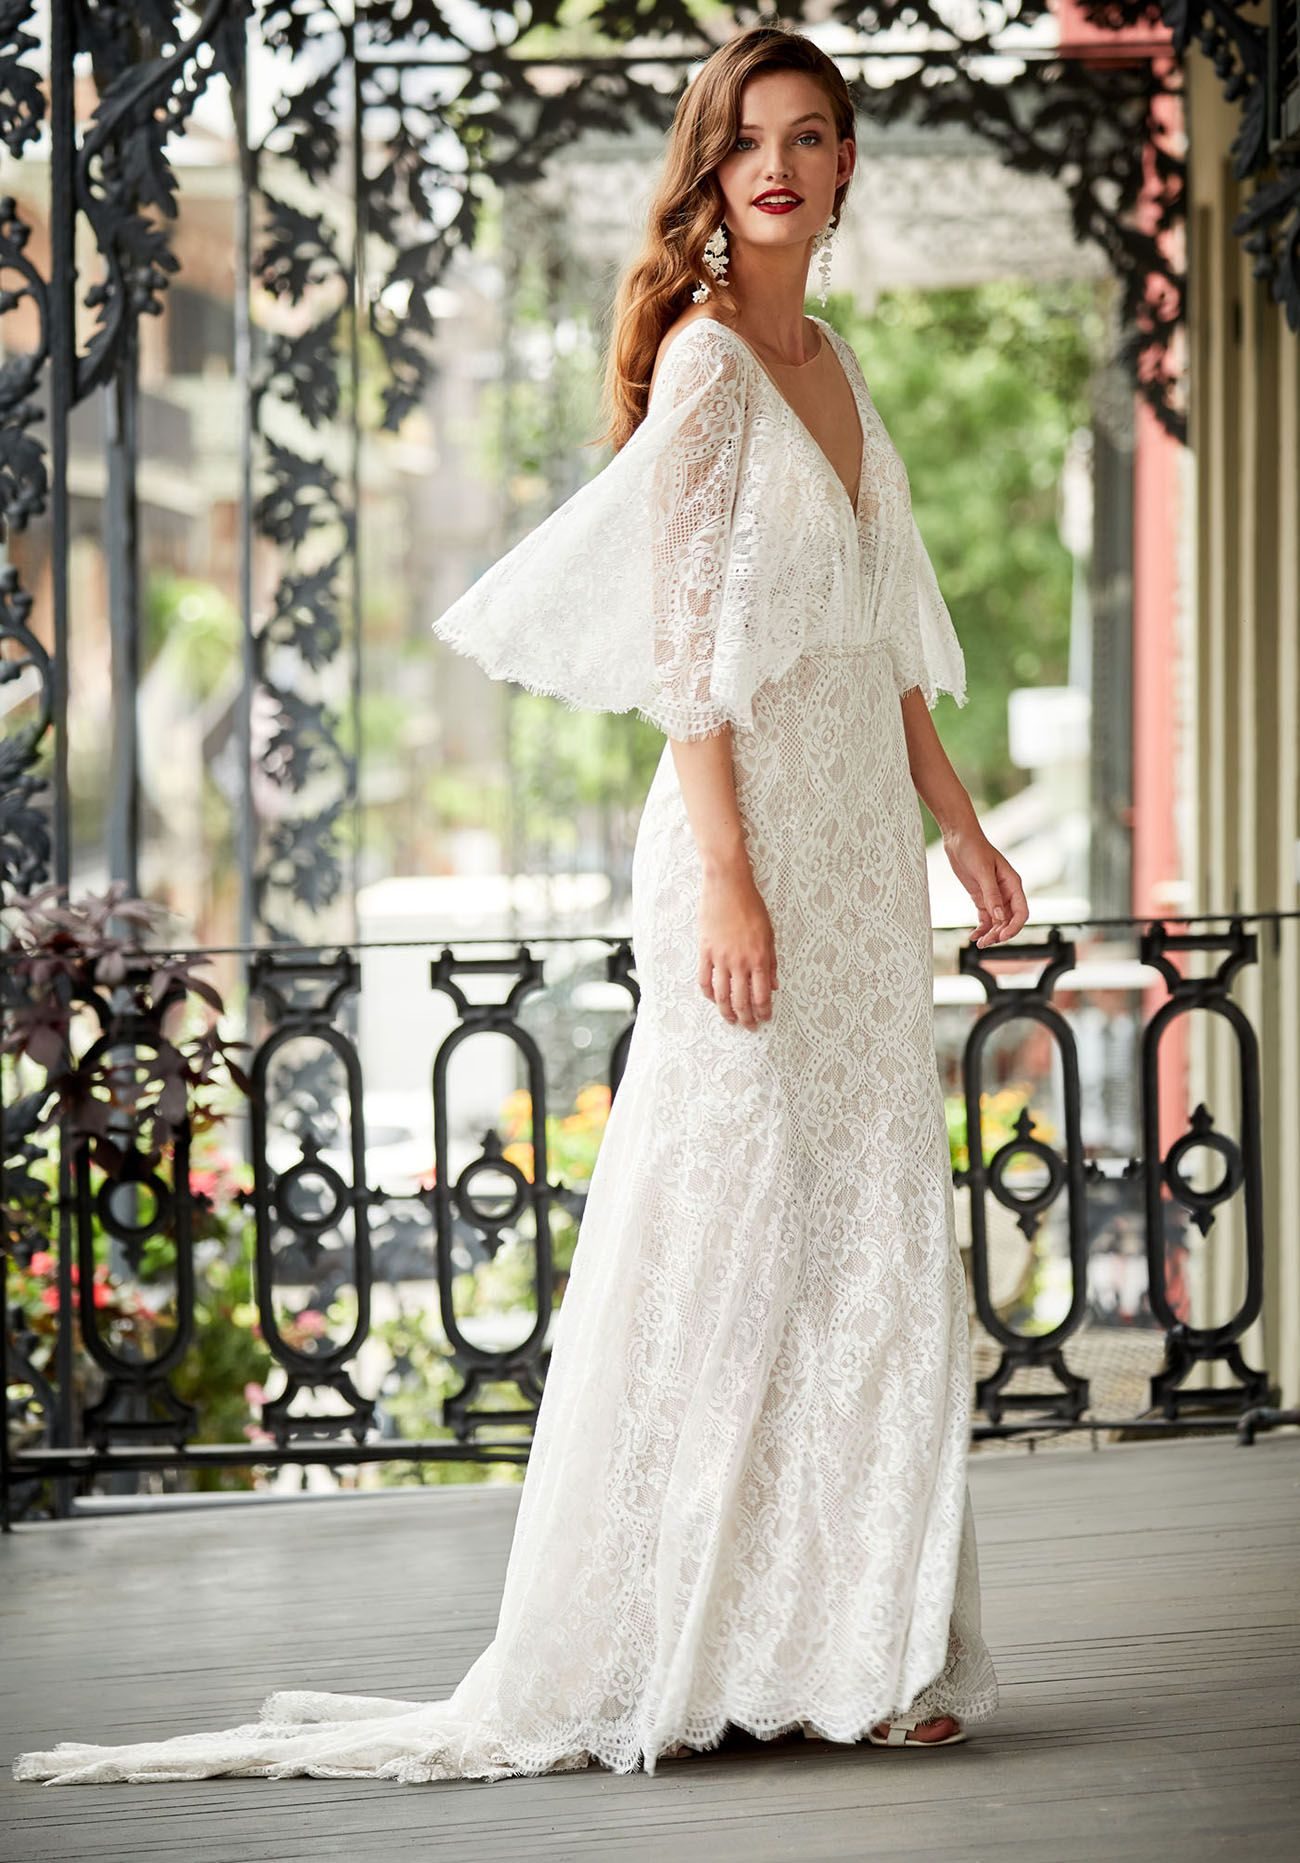 Introducing bhldn the label u a bohemianinspired line crafted